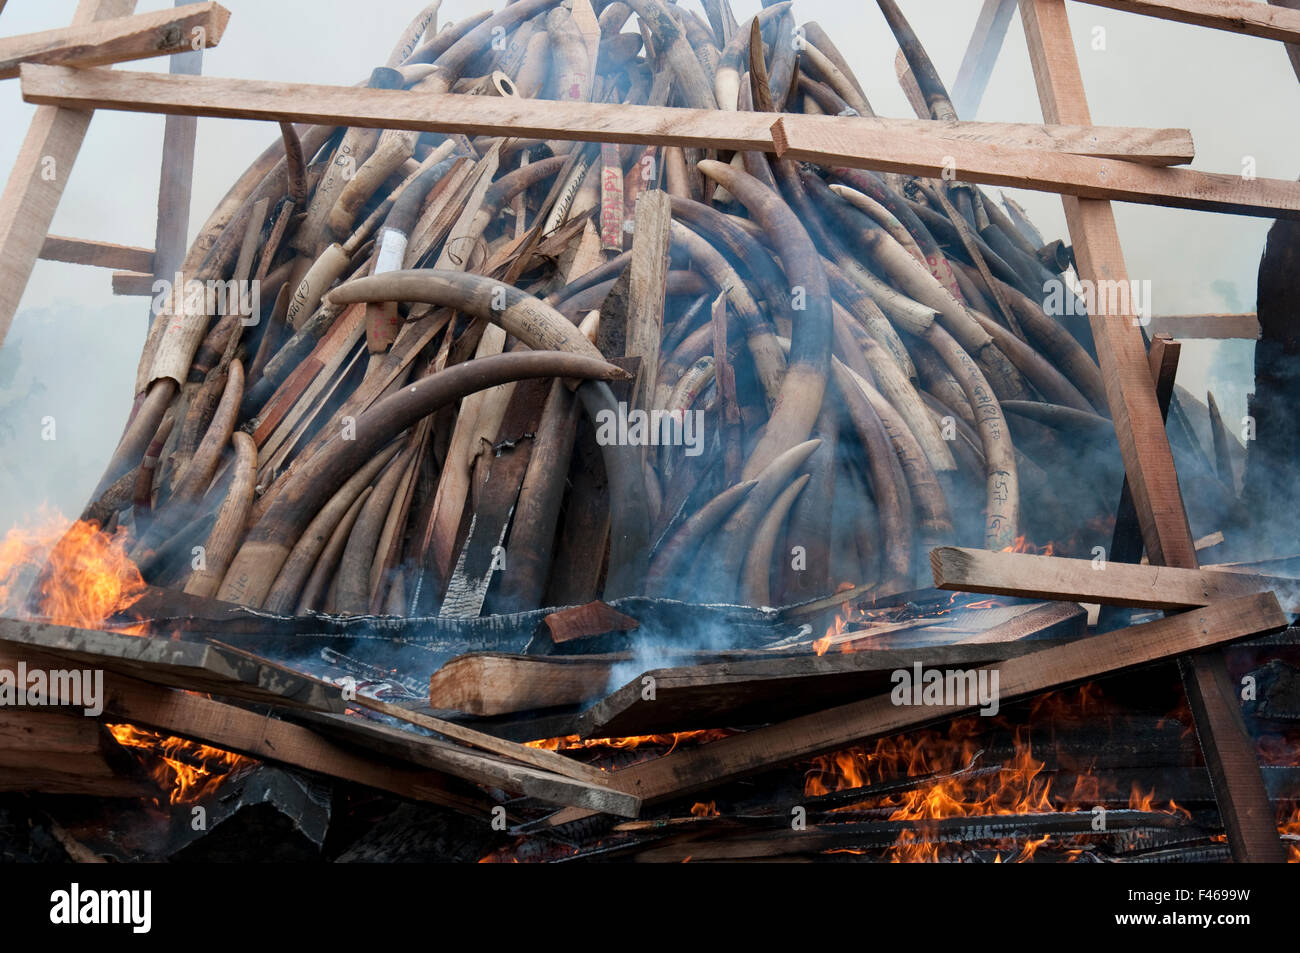 burning ivory tusks stockfotos burning ivory tusks bilder alamy. Black Bedroom Furniture Sets. Home Design Ideas